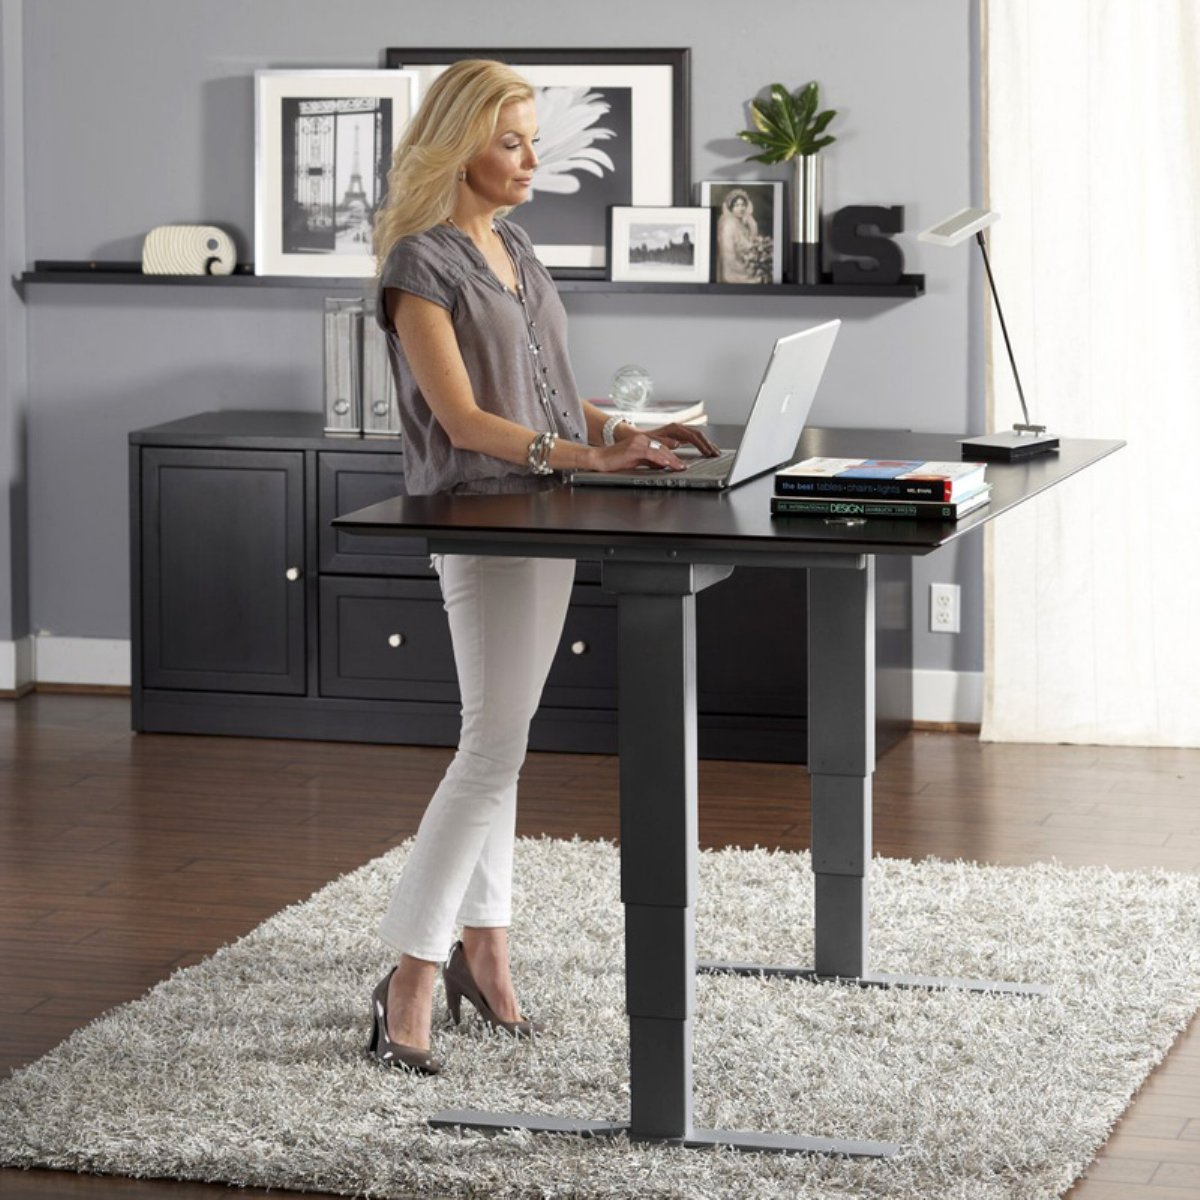 What To Consider About The Use Of Standing Height. Desk Plans Woodworking. Digital Desk Calendar. Standing Desk With Treadmill. Build Your Own Stand Up Desk. Poker Tables For Sale Near Me. Solid Wood Coffee Table Sets. Round Glass Coffee Tables. Floor Desk Japanese